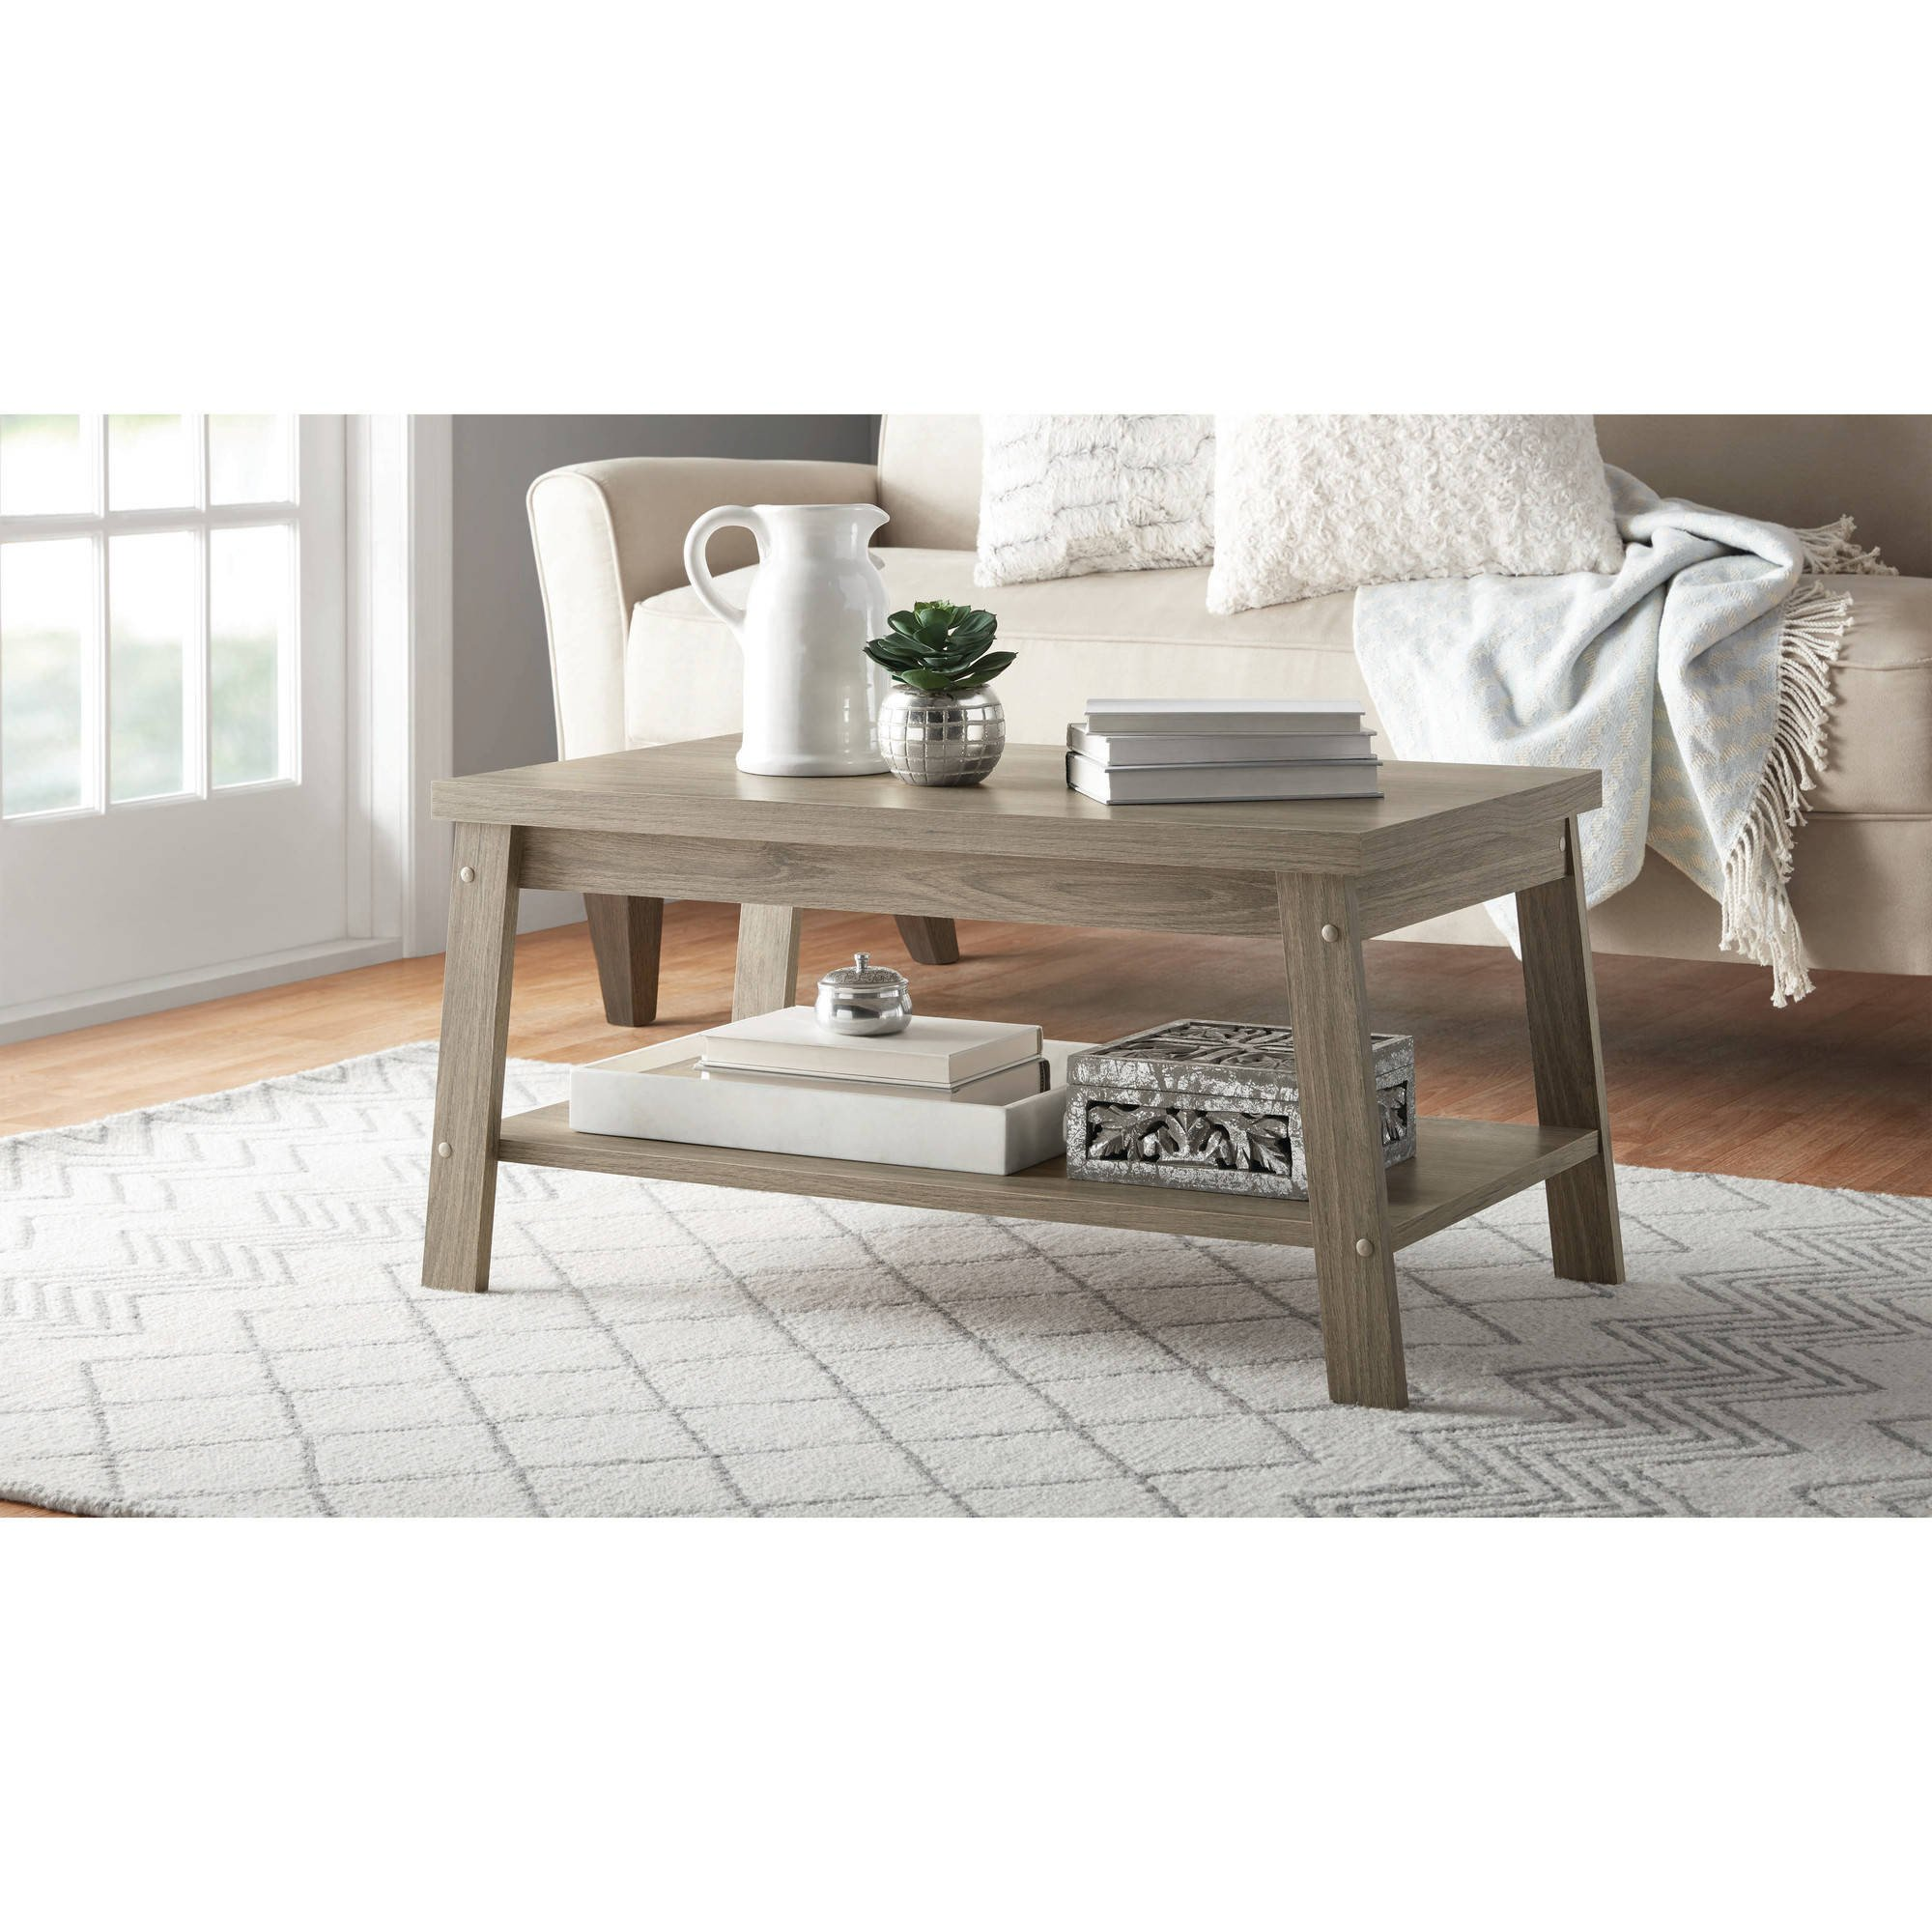 Walmart Bedroom End Tables Unique Furniture Adorable Walmart Coffee Table with sophisticated